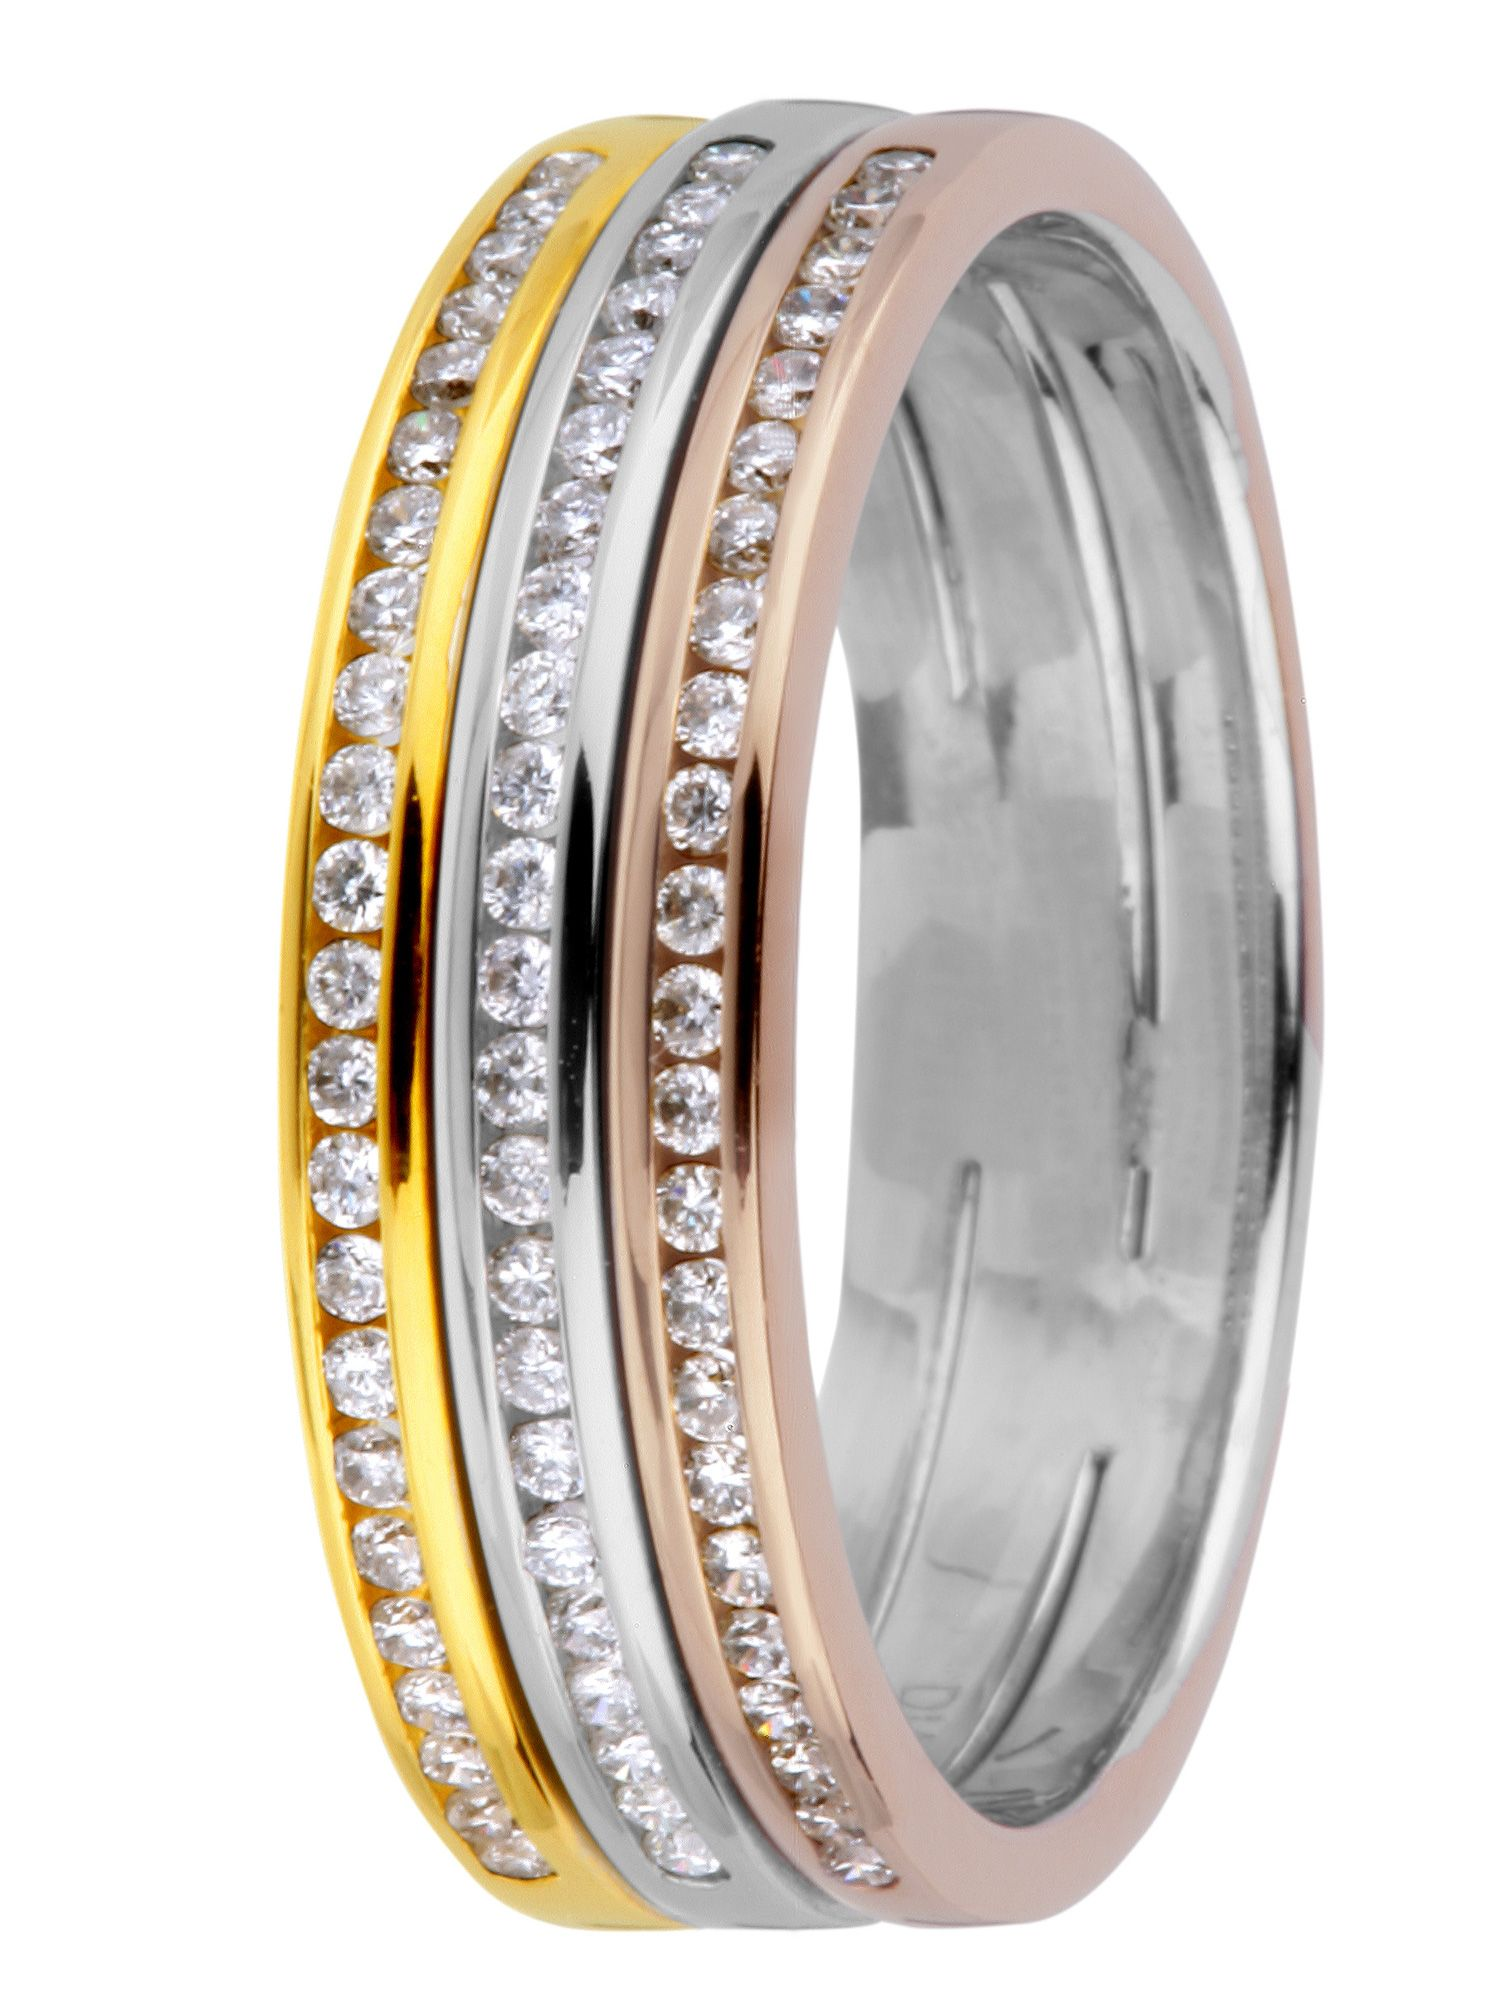 Brides 18ct gold 0.50ct diamond wedding ring